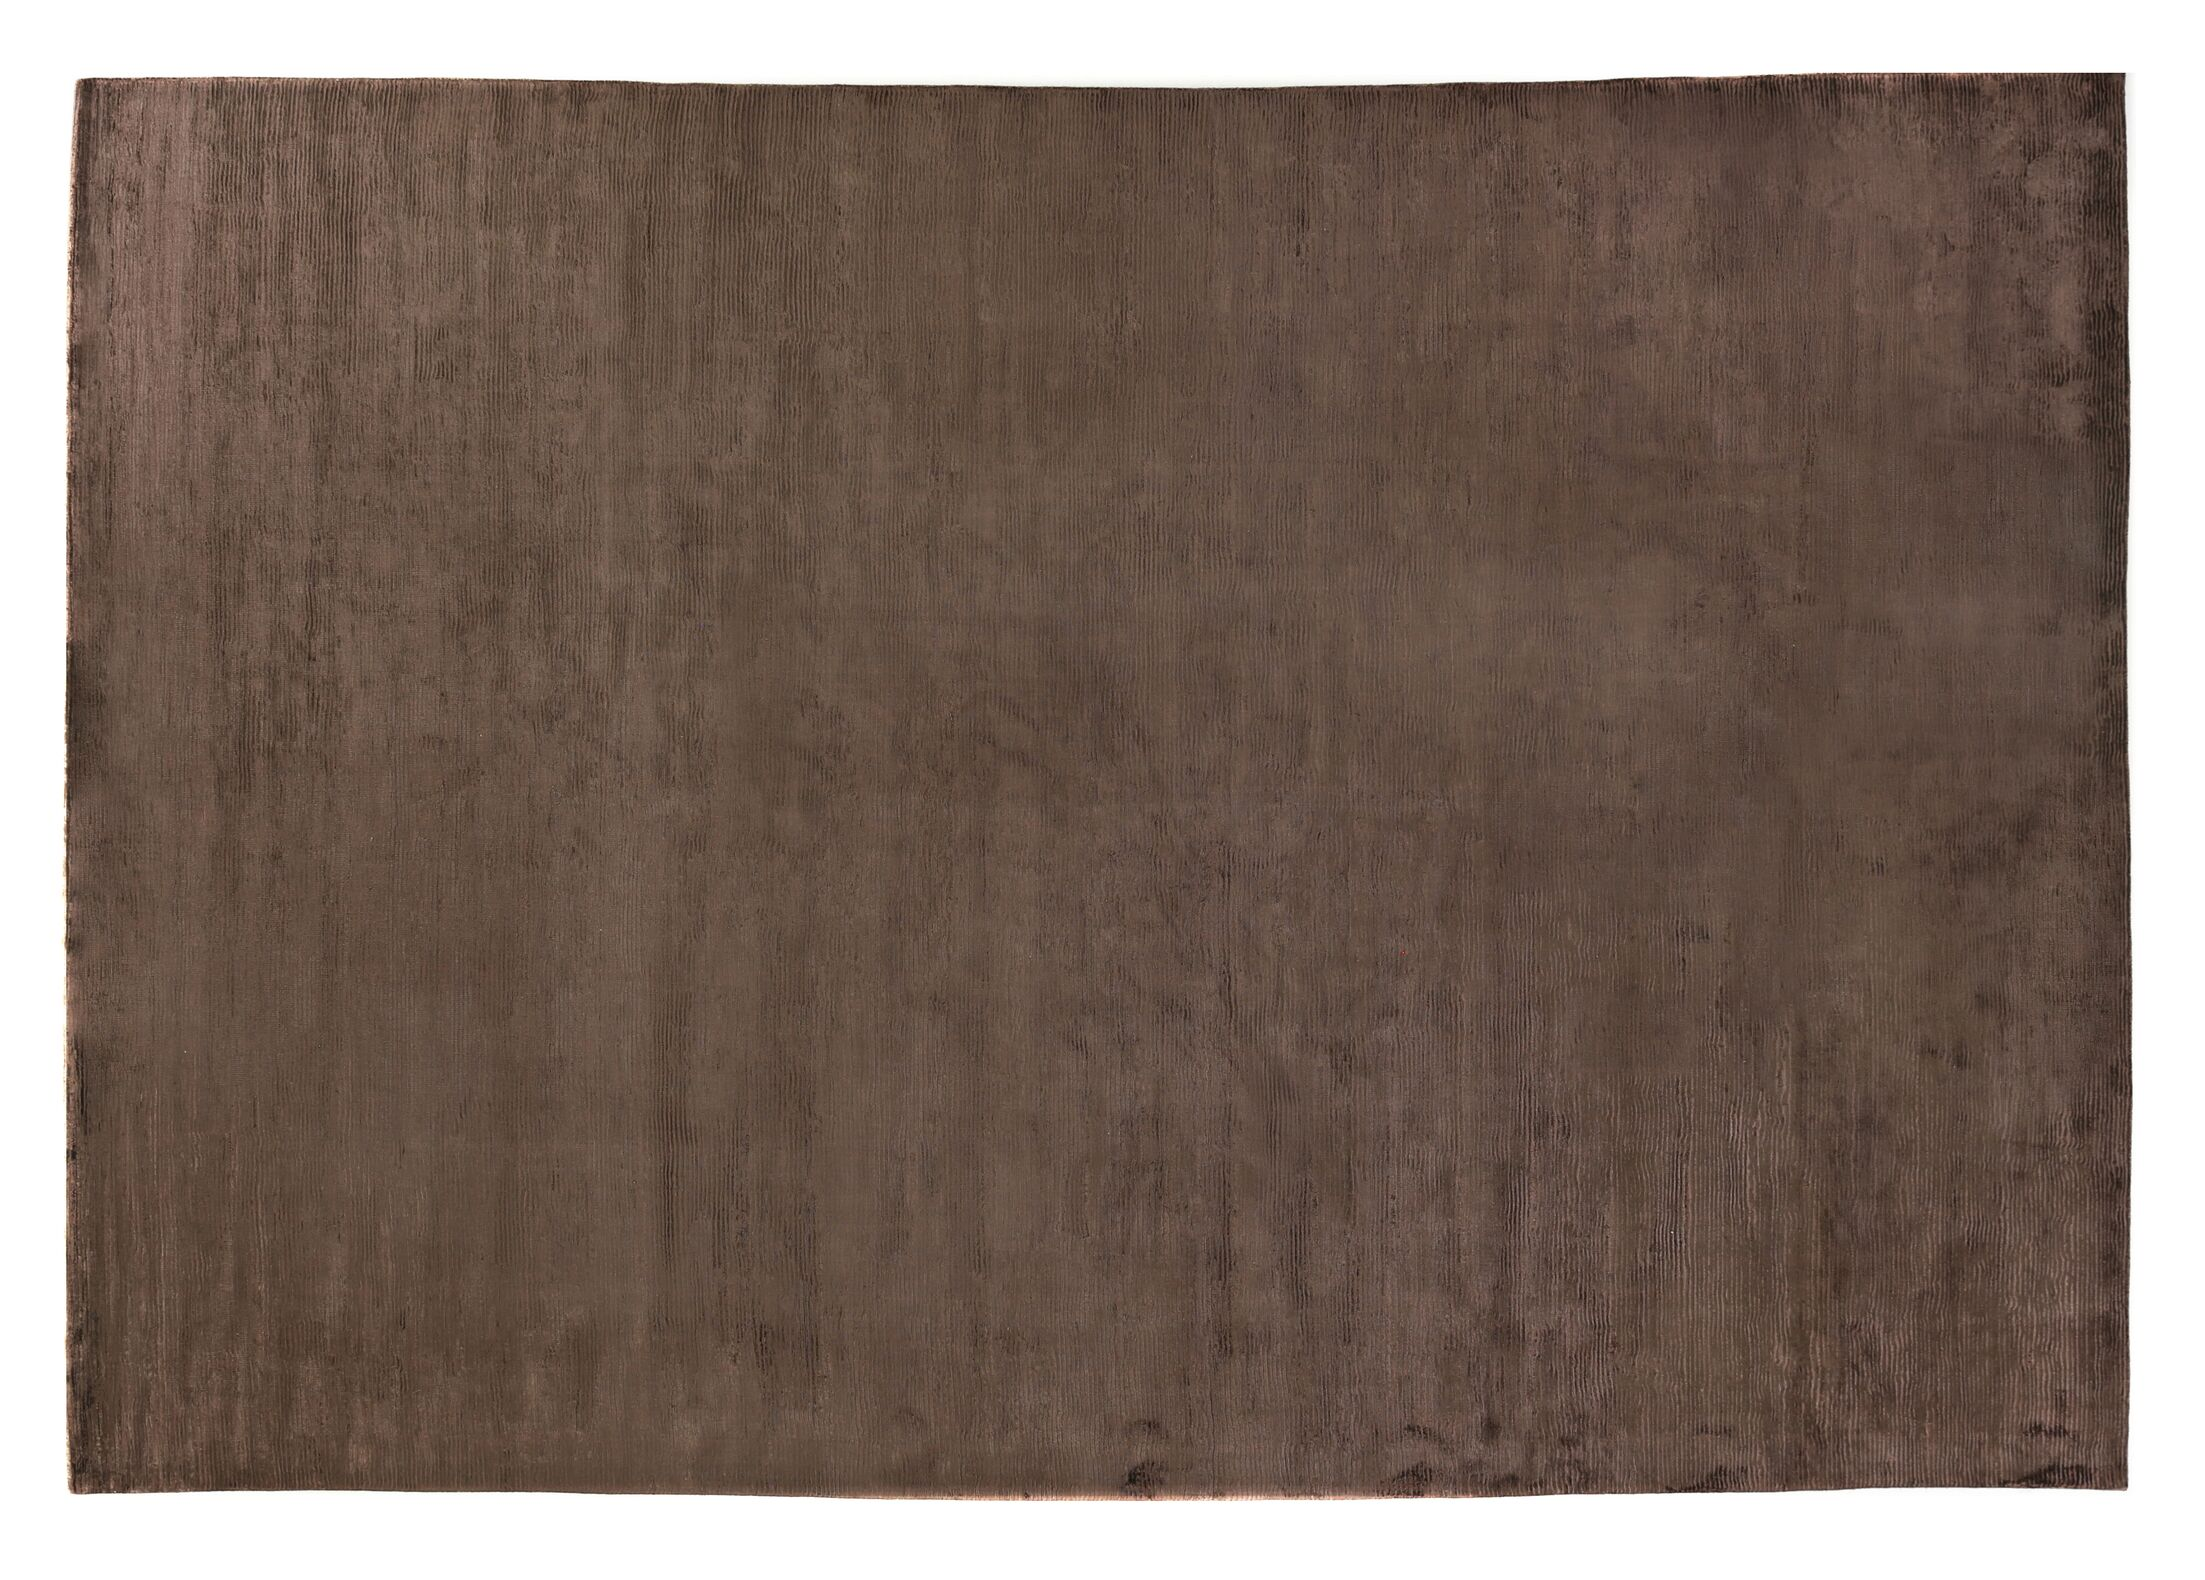 Dove Courduroy Hand-Woven Silk Brown Area Rug Rug Size: Rectangle 6' x 9'